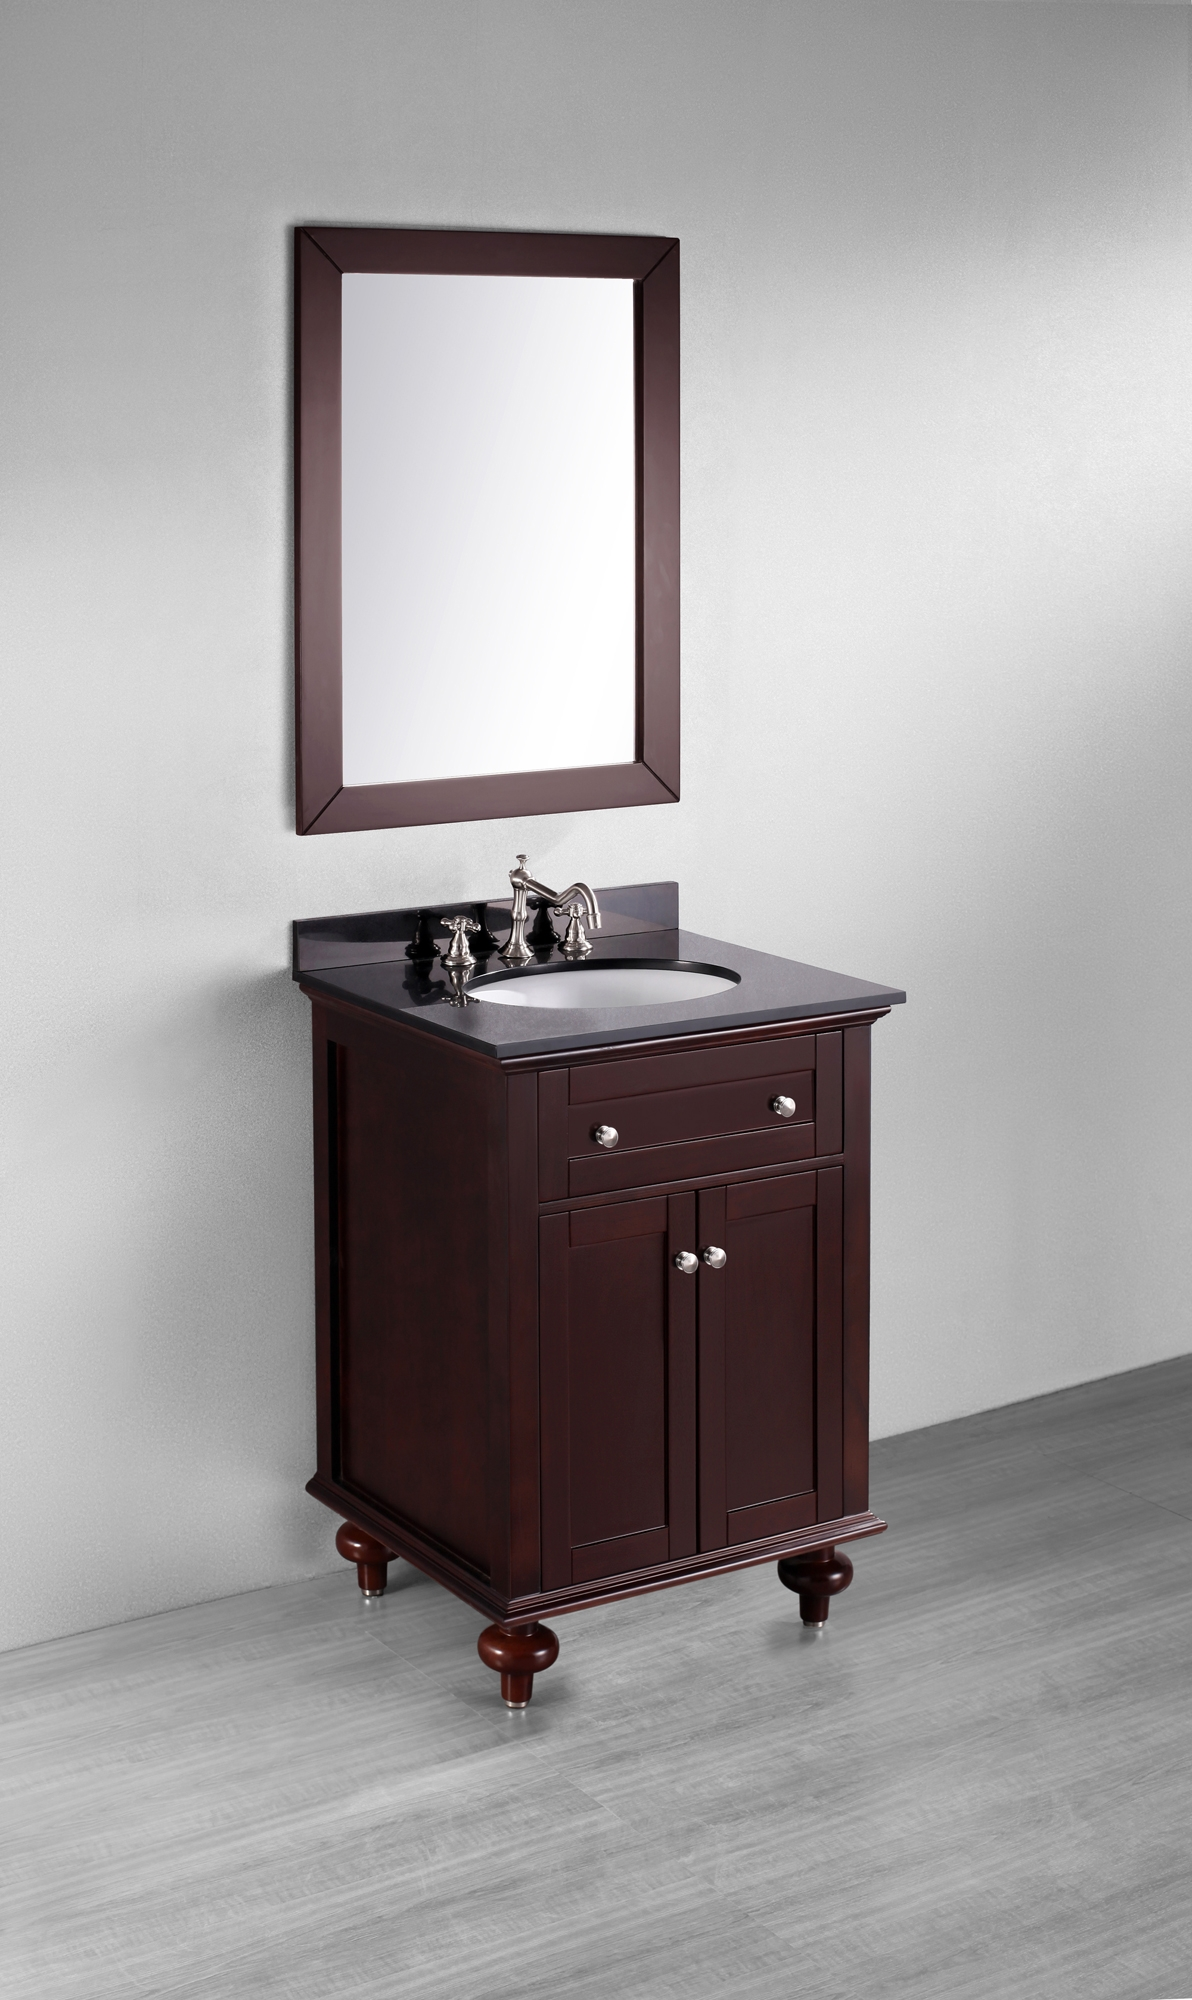 25 Inch Bathroom Vanity With Sink